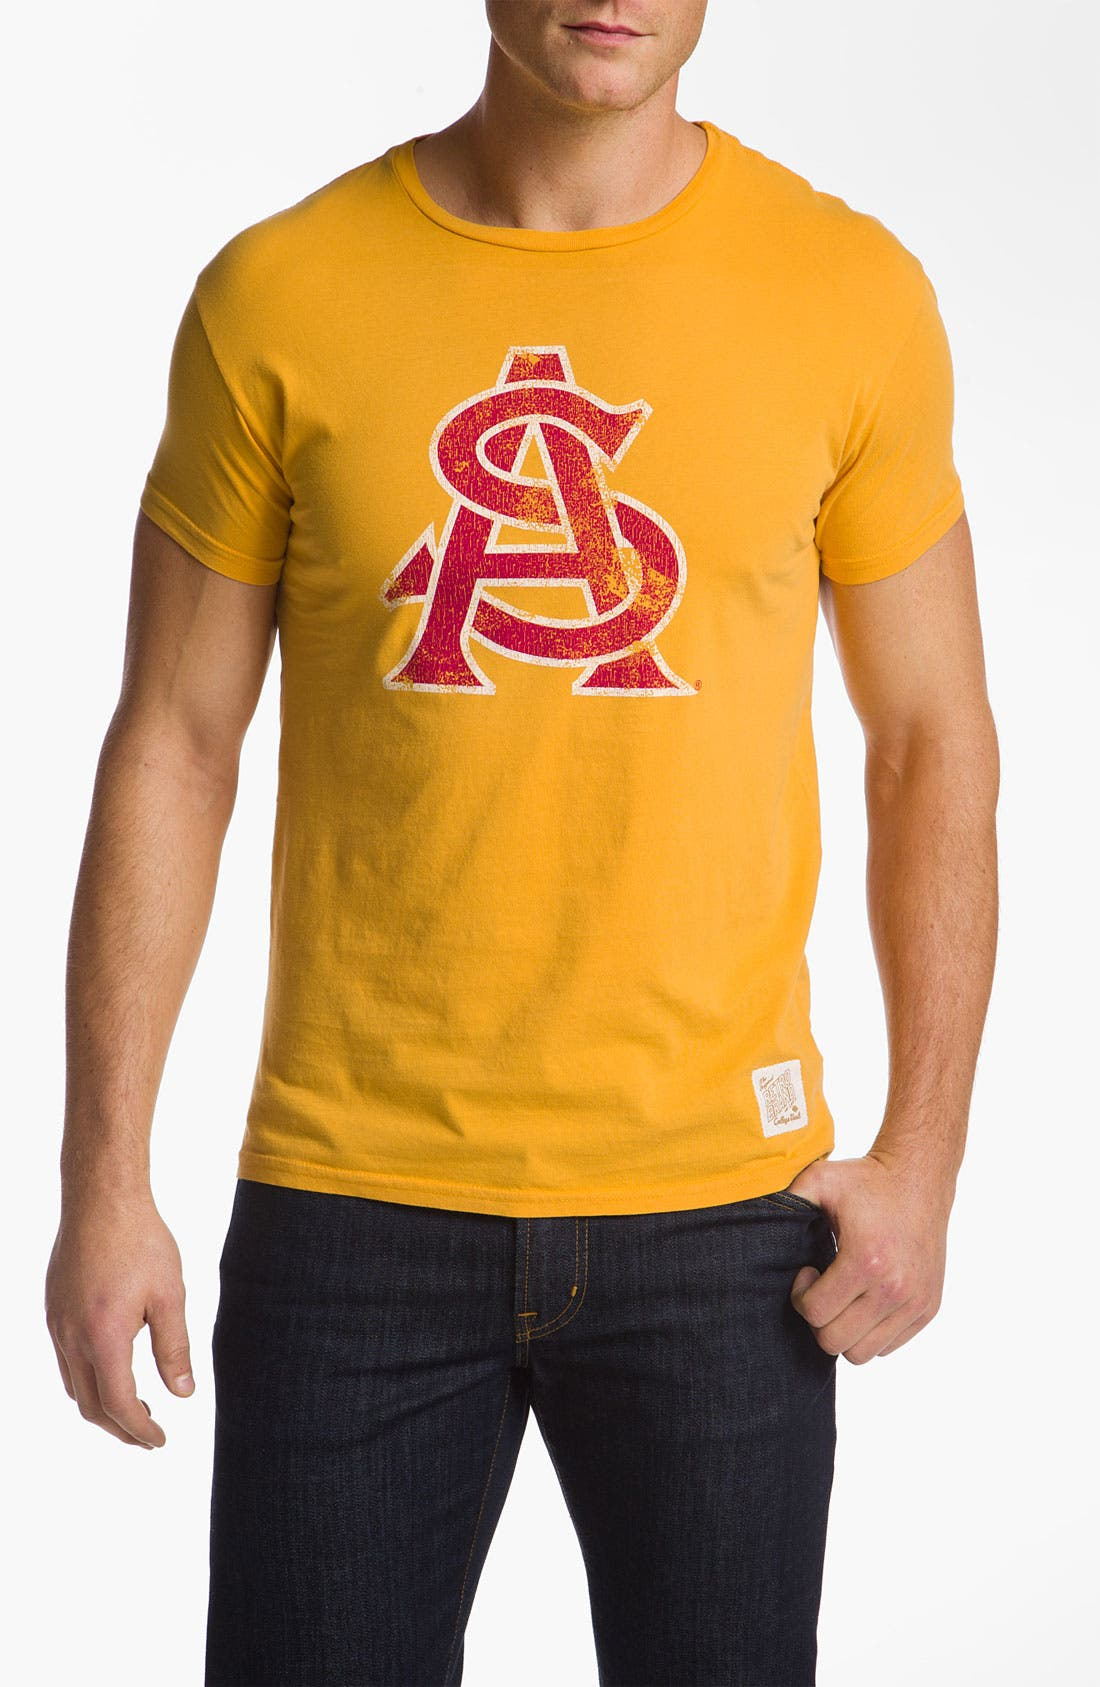 Alternate Image 1 Selected - Retro Brand 'Arizona State Sun Devils' T-Shirt